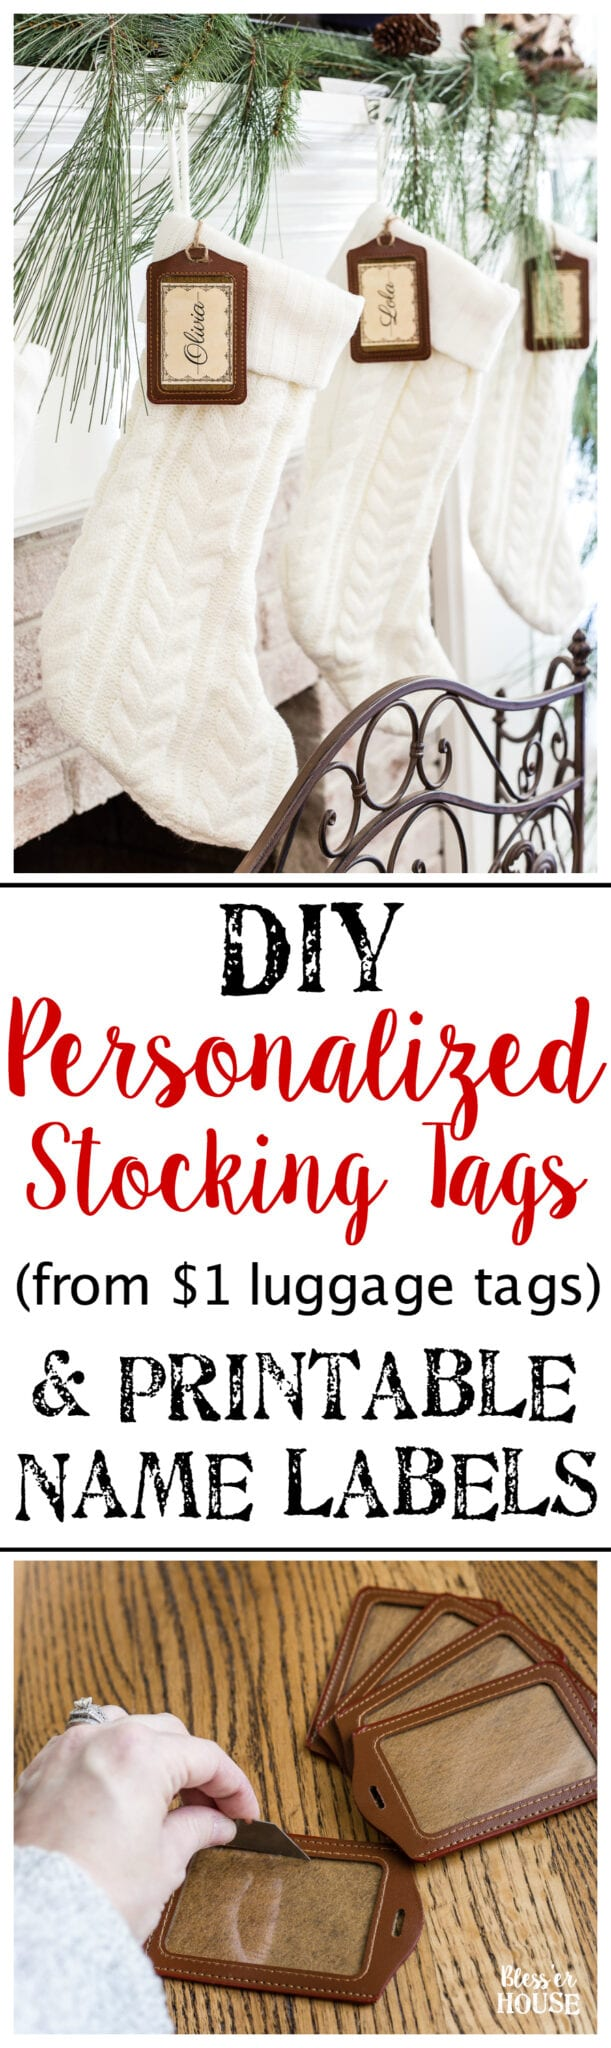 Diy Personalized Stocking Tags Printable Labels Bless Er House